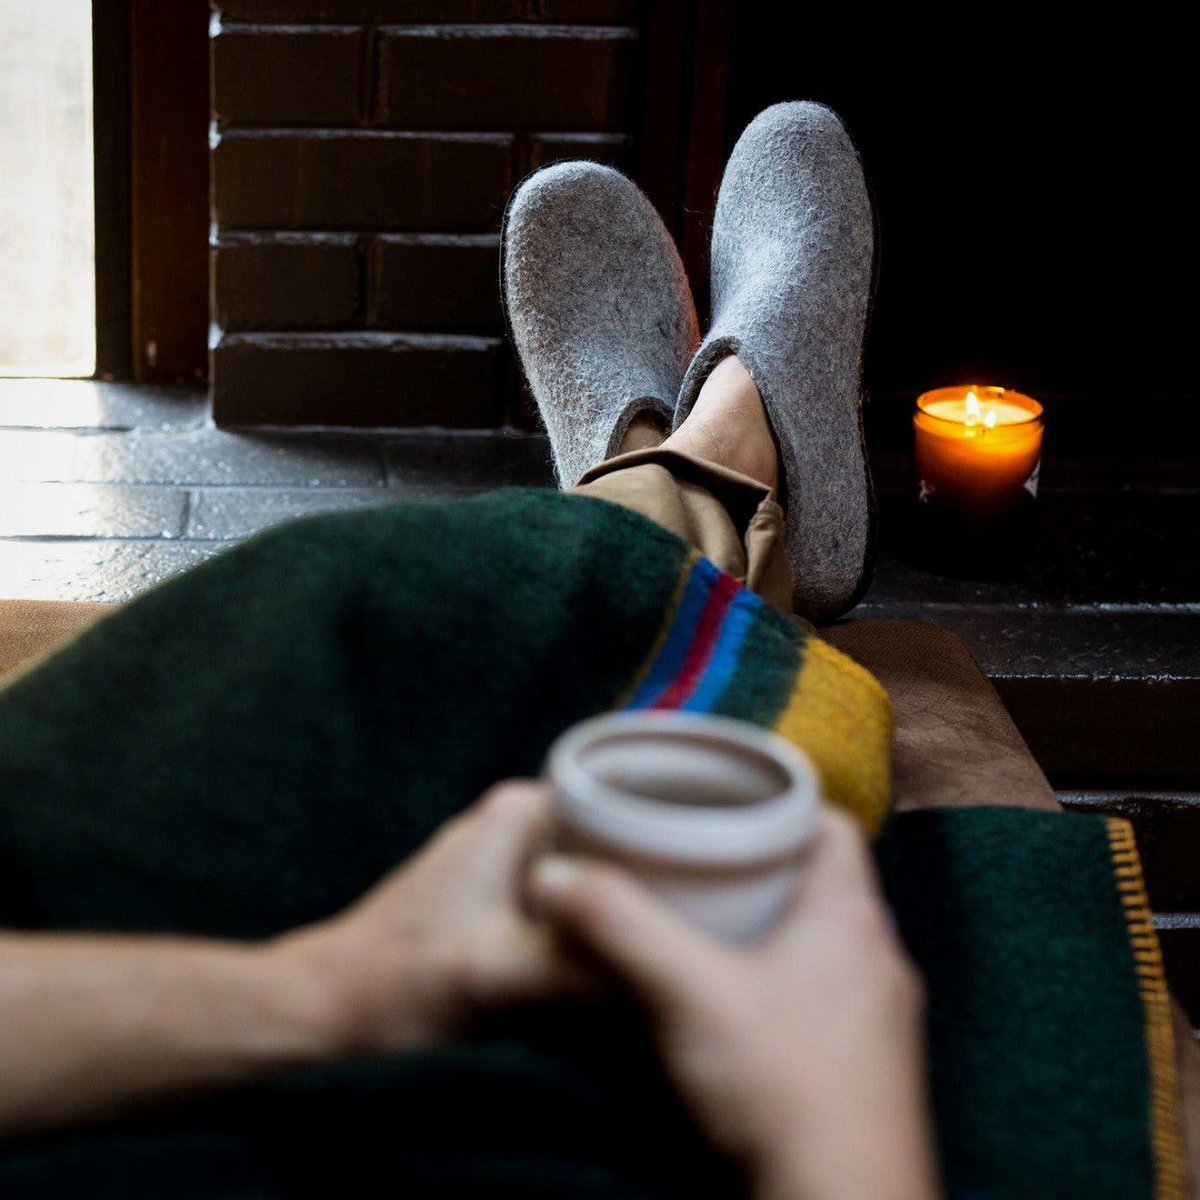 6ffb6ee7feb Relax and recover with slippers from Glerups. 100% pure and natural wool.   danssports  giftideas  glerups  slippers  myglerups  glerupsslippers   giftsforhim ...